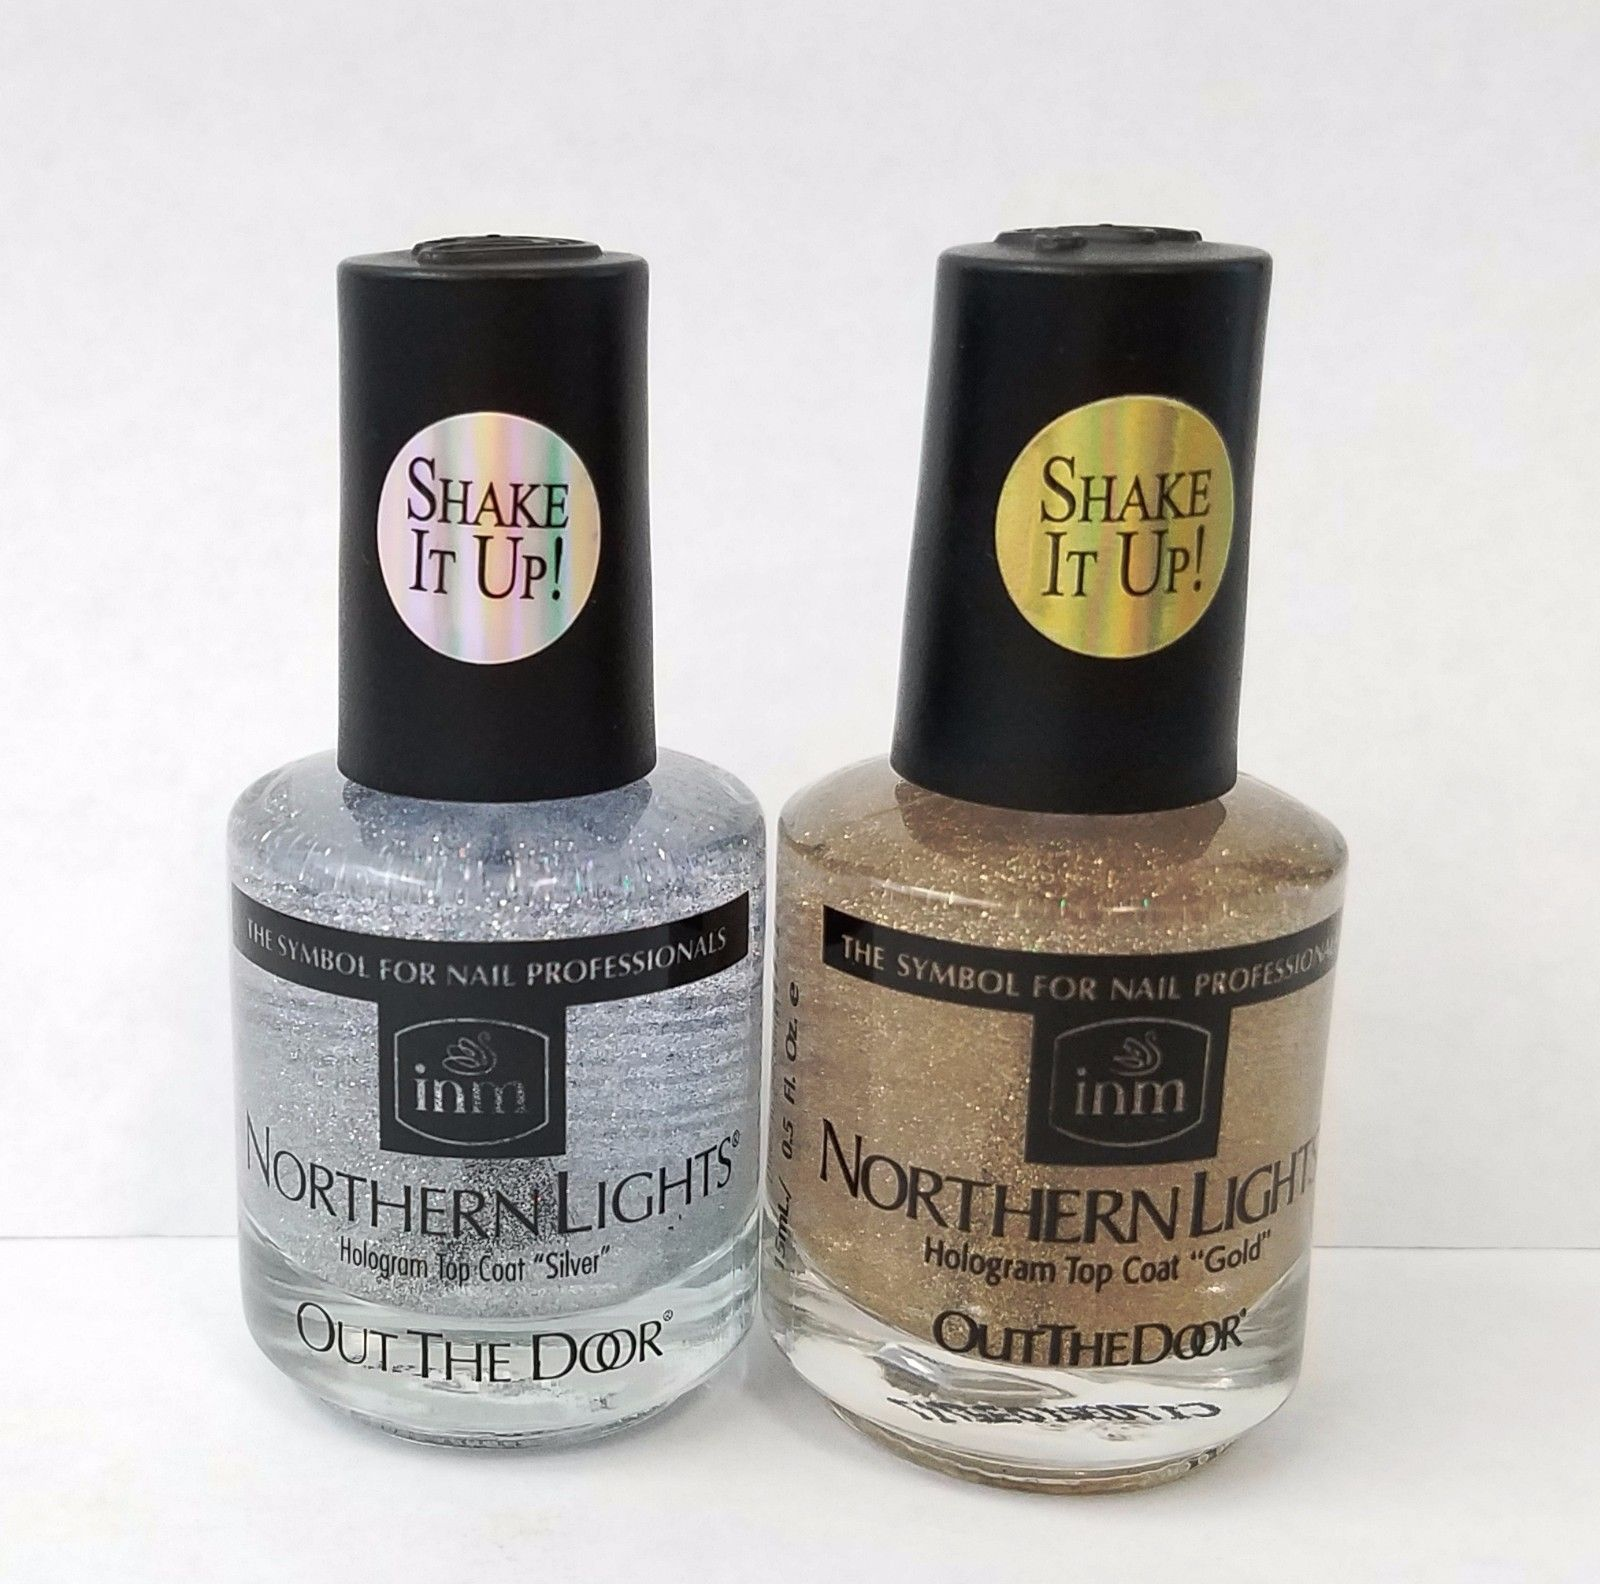 Inm Northern Lights Shake It Up Hologram Top Coat